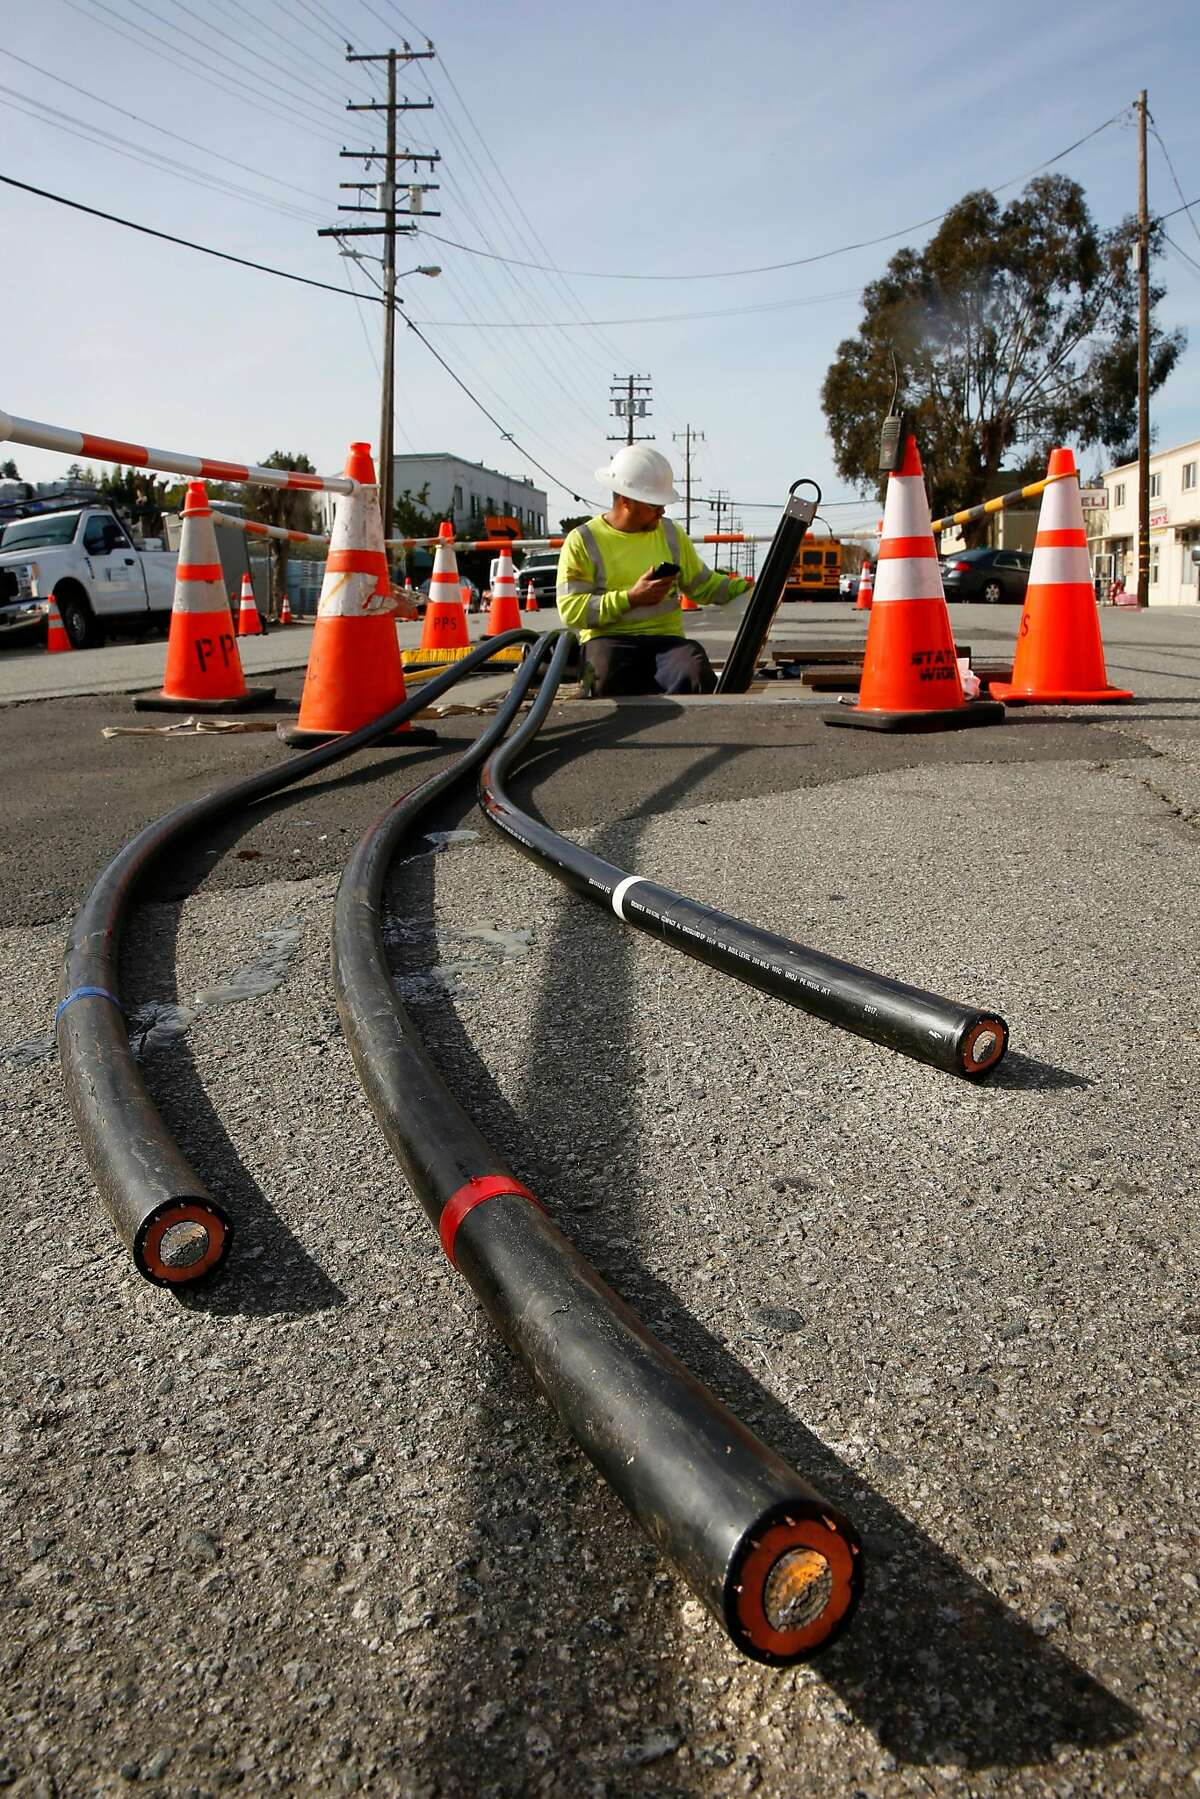 Zach Braun with Pinnacle Power helps to install P. G. and E. power lines underground along Old Country Rd. near Harbor Way, with plans on removing the overhead power poles in six weeks, in Belmont, Calif., on Tues. Mar. 6, 2018.